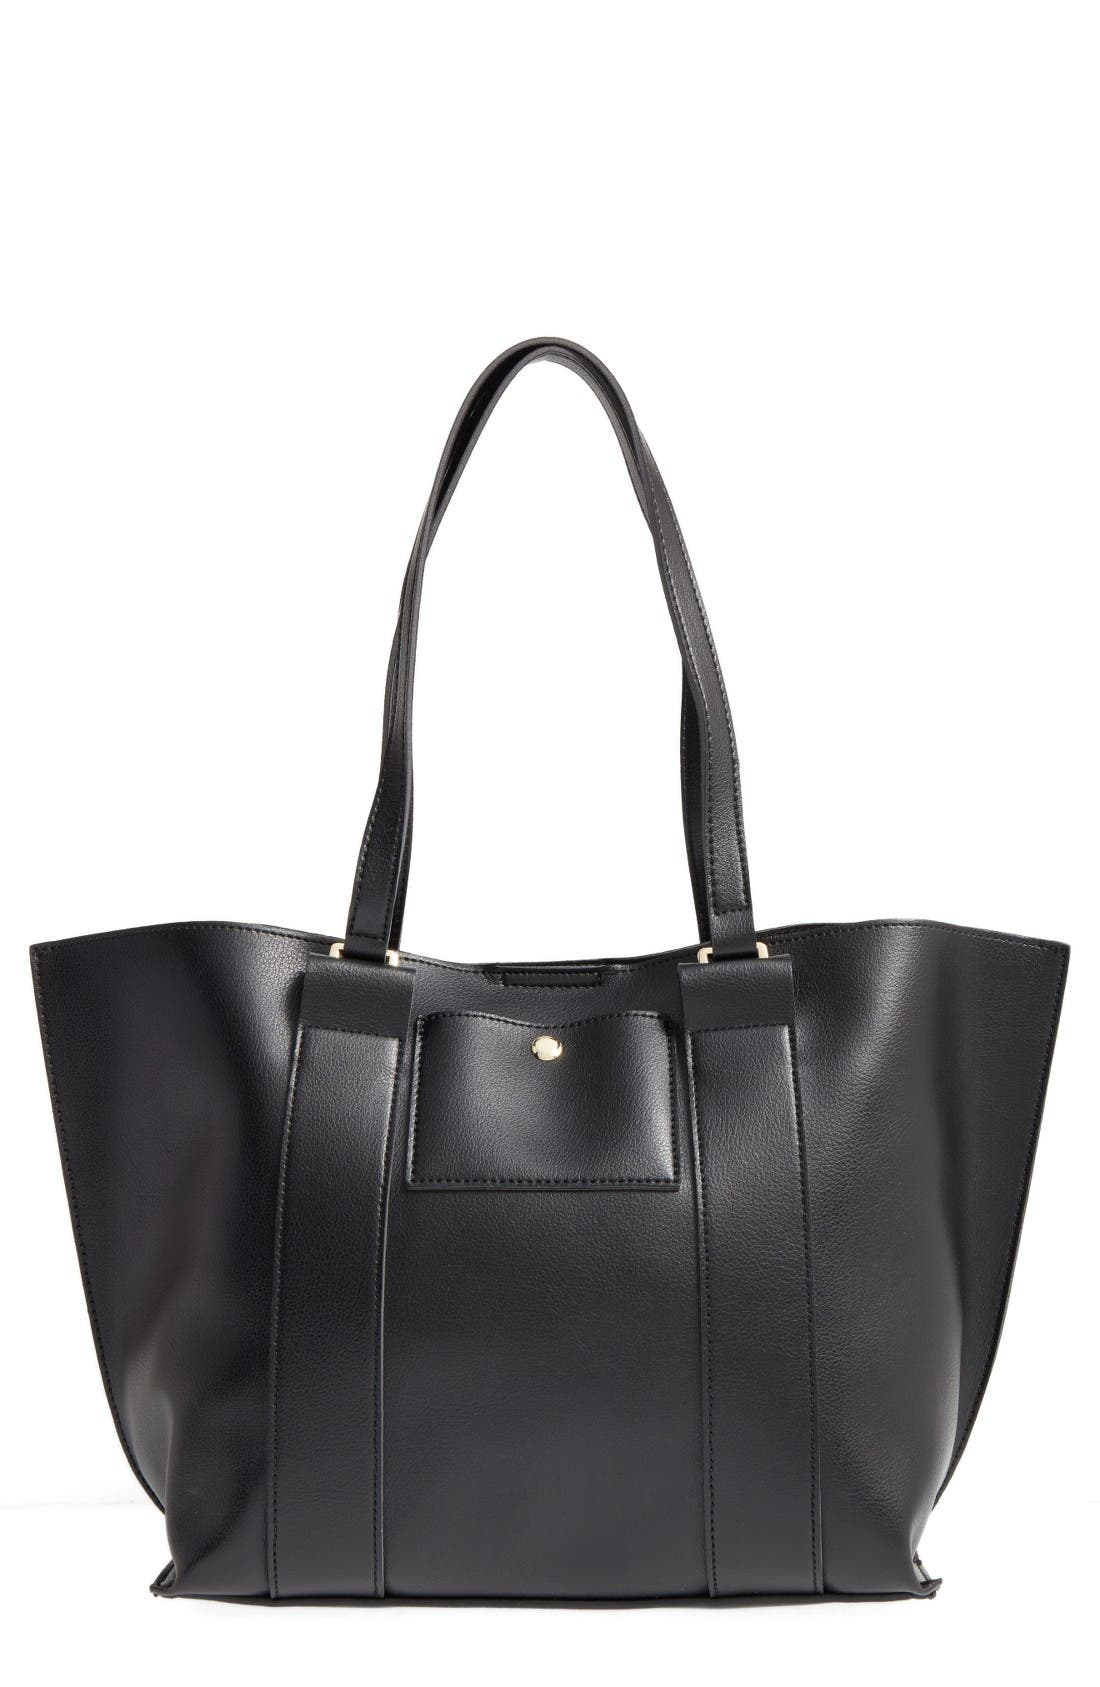 Main Image - Emperia Faux Leather Tote (Special Purchase)